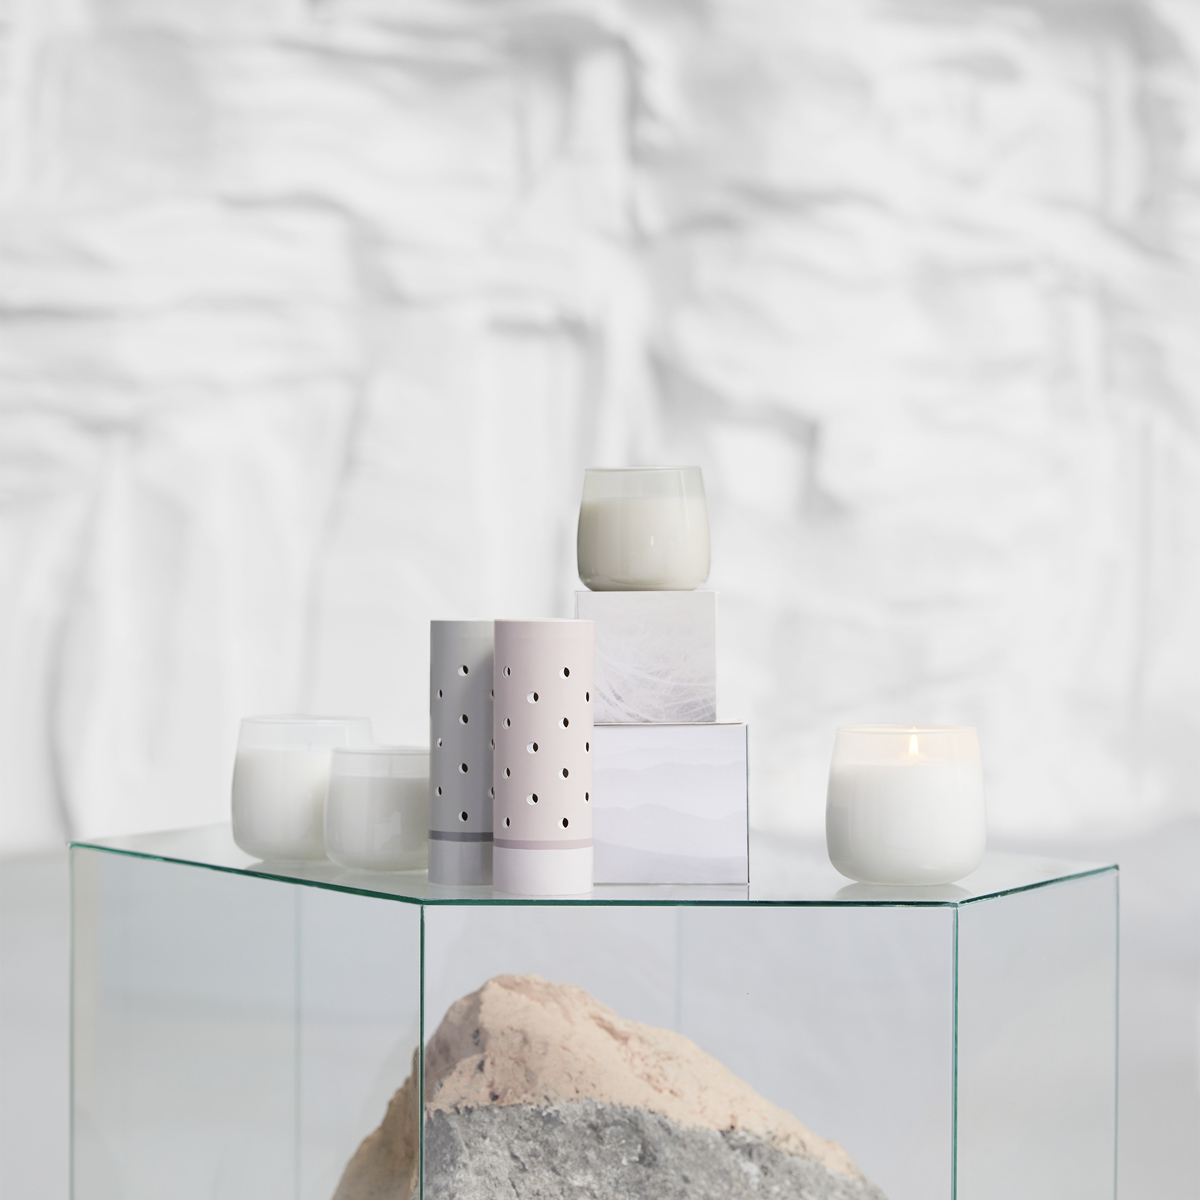 With IKEA FRISKHET scented containers you can refresh the air by filling it with a potpourri of sandalwood, cedar and vanilla. You can also choose the IKEA FRISKHET scented candles in glass with the fragrance of fluffy towels and sandalwood/vanilla satin.